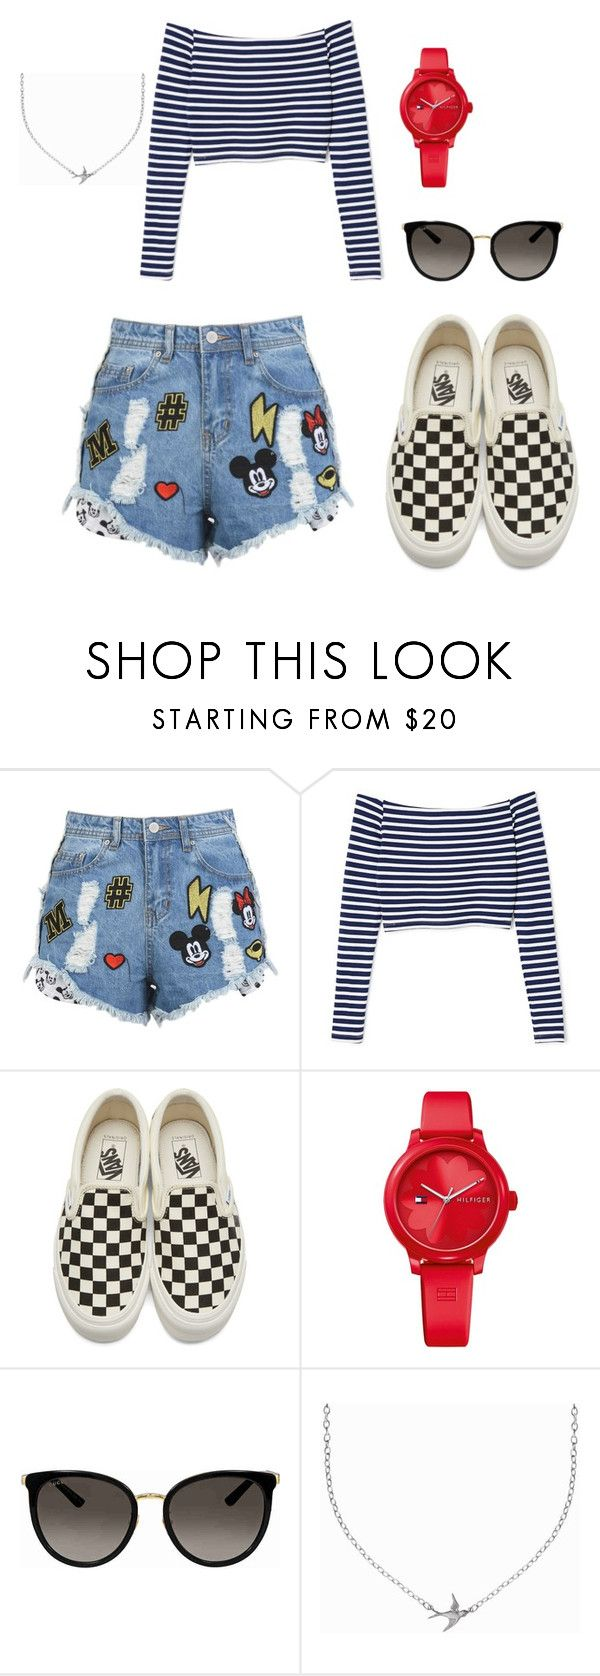 """Descontraído"" by jessicatrindadesfs on Polyvore featuring moda, Disney Stars Studios, Vans, Tommy Hilfiger, Gucci e Minnie Grace"